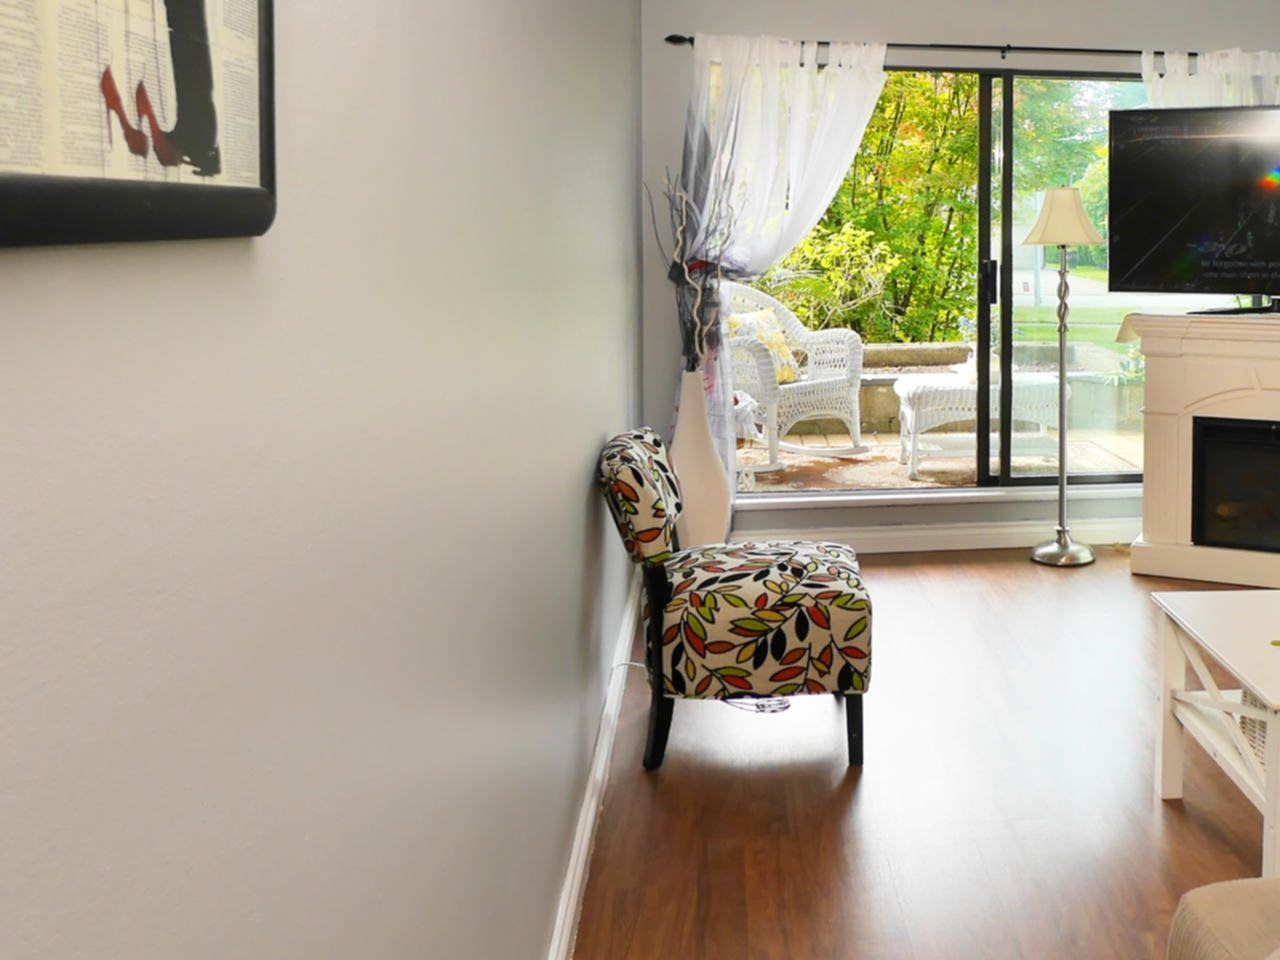 """Photo 7: Photos: 105 9952 149 Street in Surrey: Guildford Condo for sale in """"Tall Timbers"""" (North Surrey)  : MLS®# R2107429"""